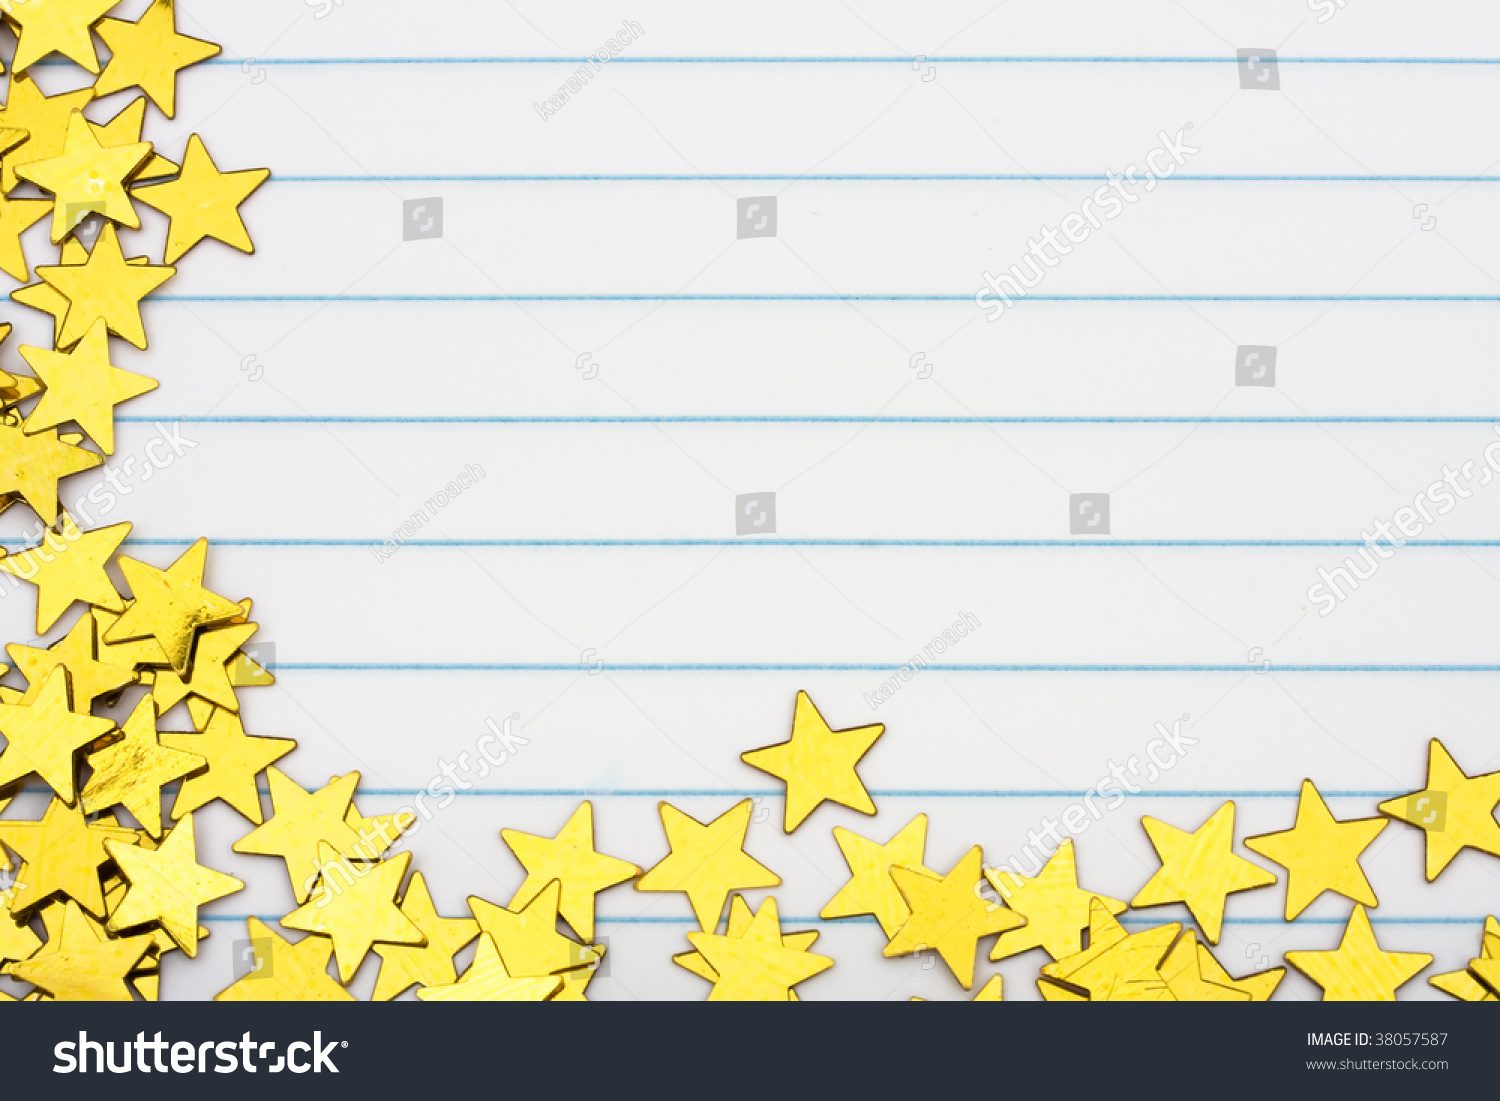 Gold Stars Making Border On Lined Photo 38057587 Shutterstock – Lined Border Paper